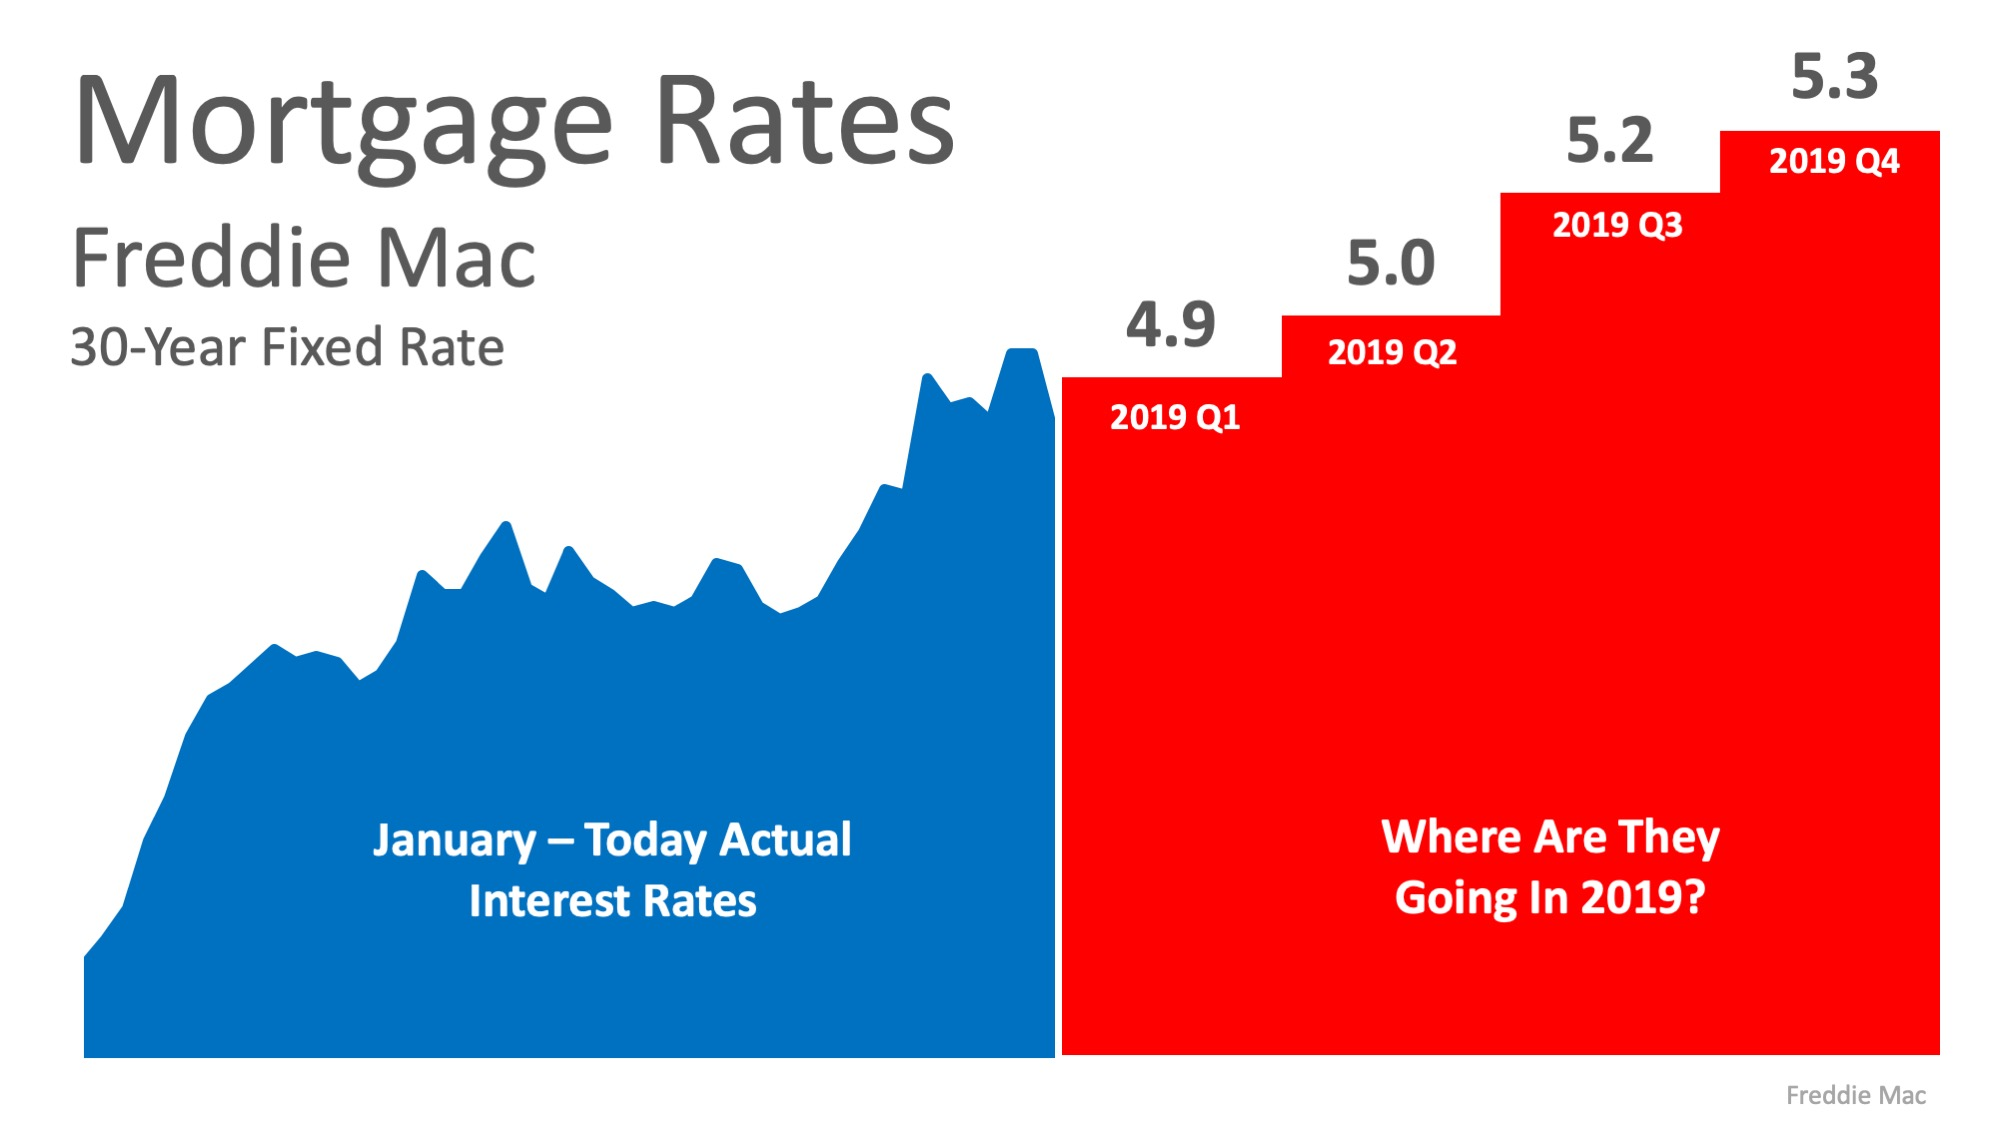 2019 Mortgage Rates.jpeg